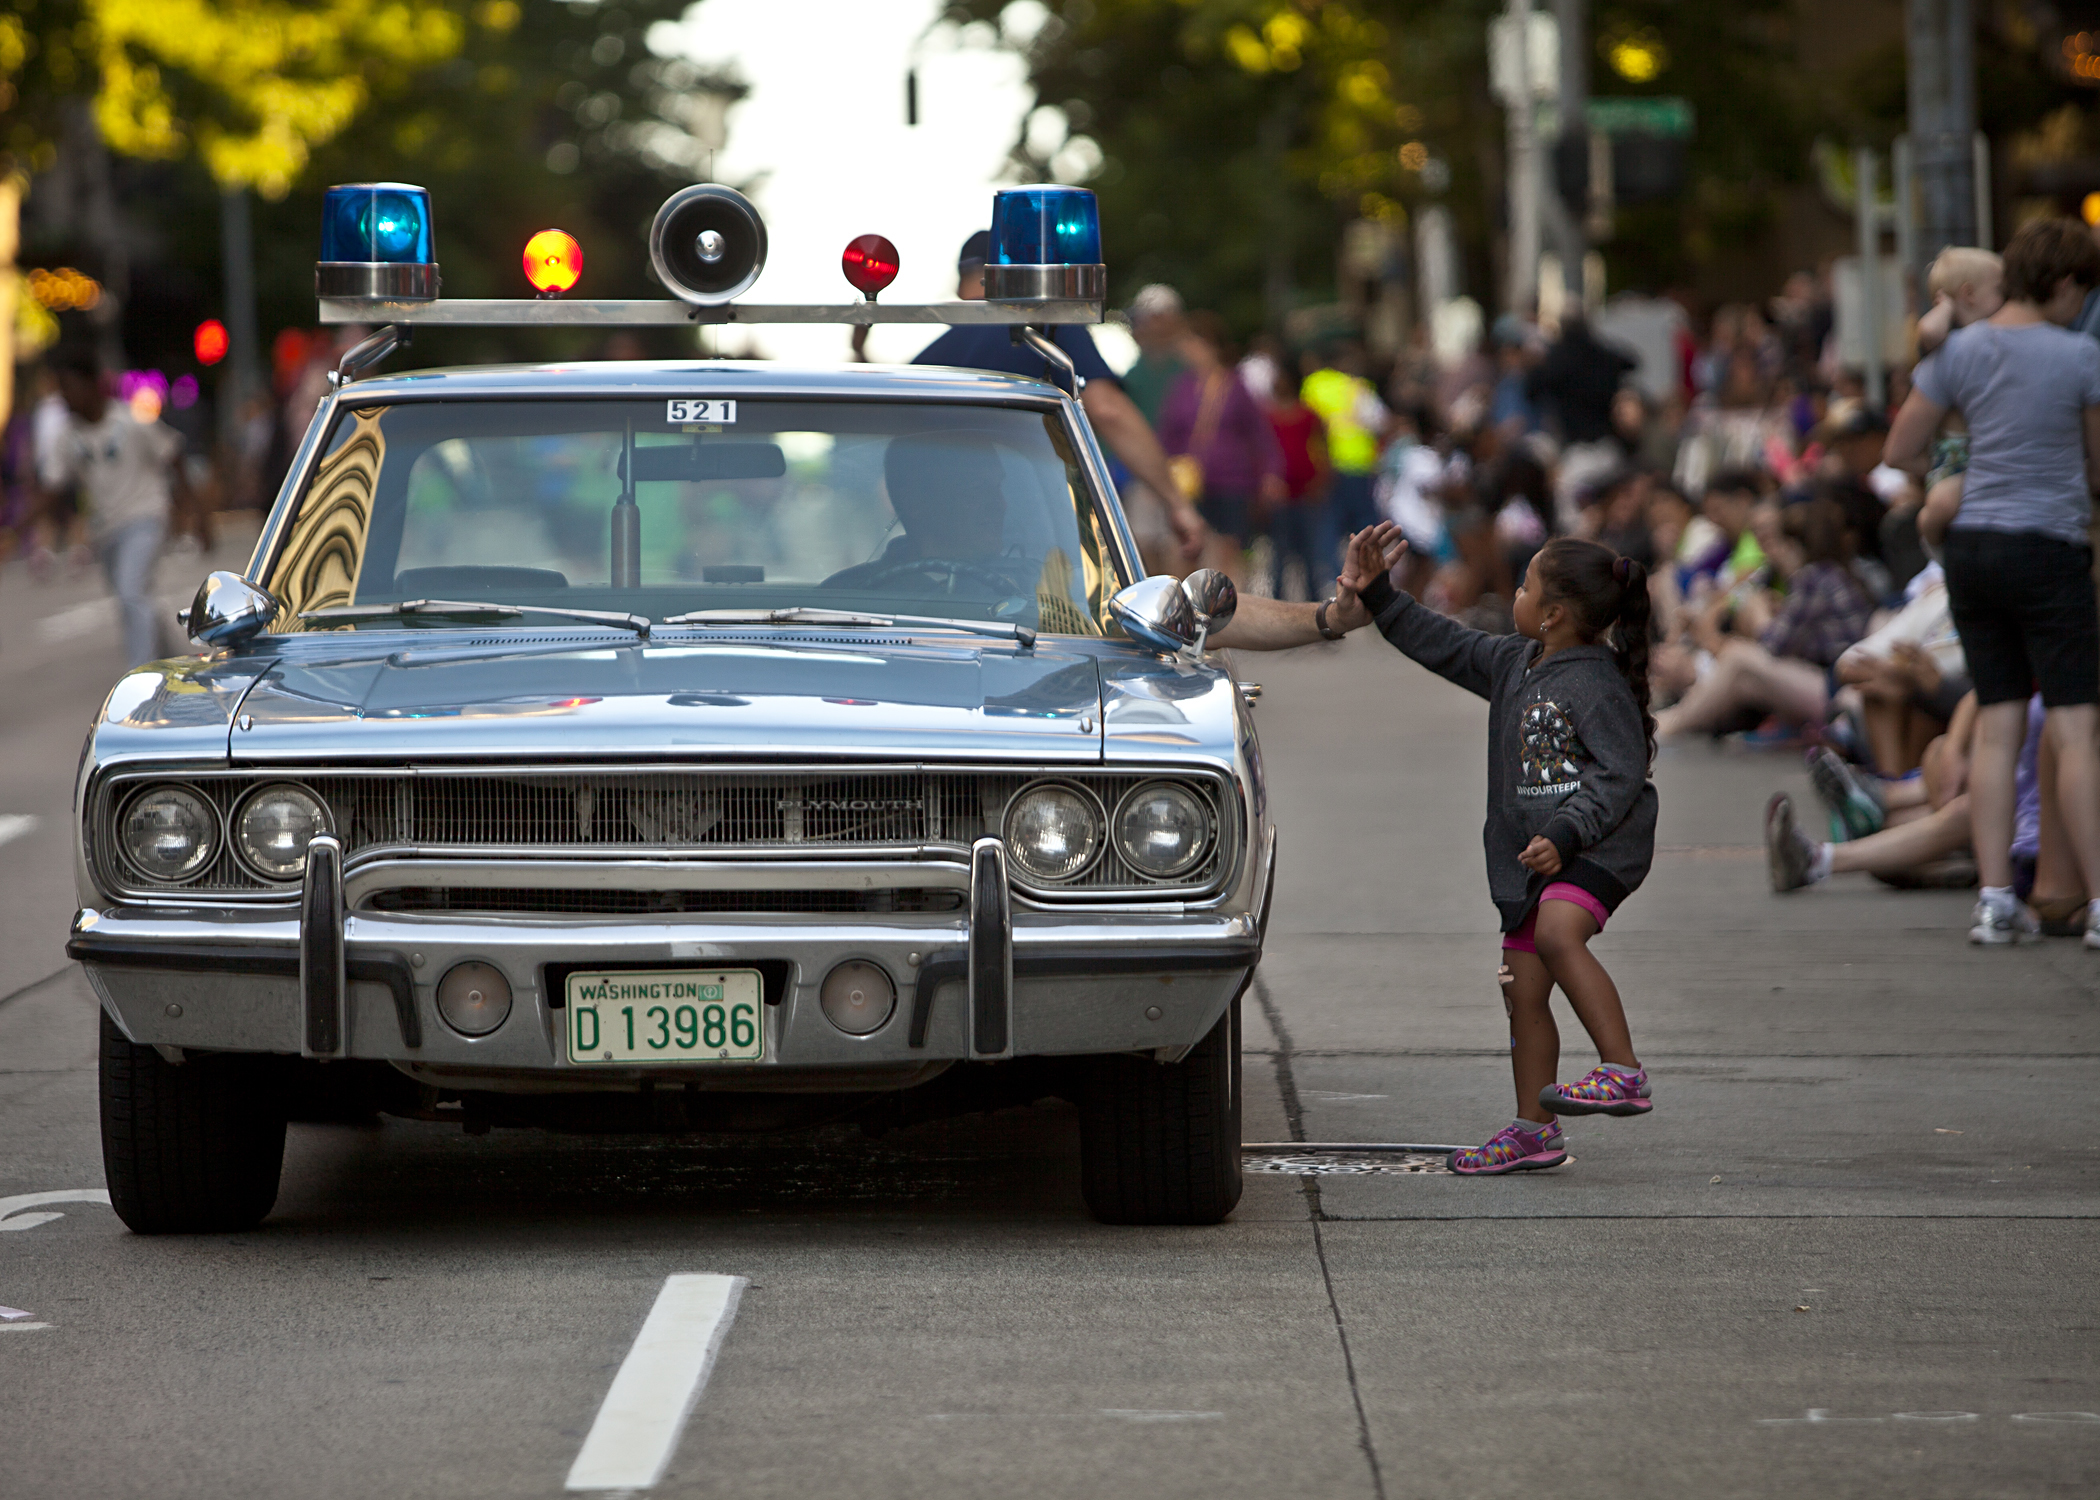 One little girl offers a Seattle Police Officer a high-five during the 2014 Torchlight Parade.